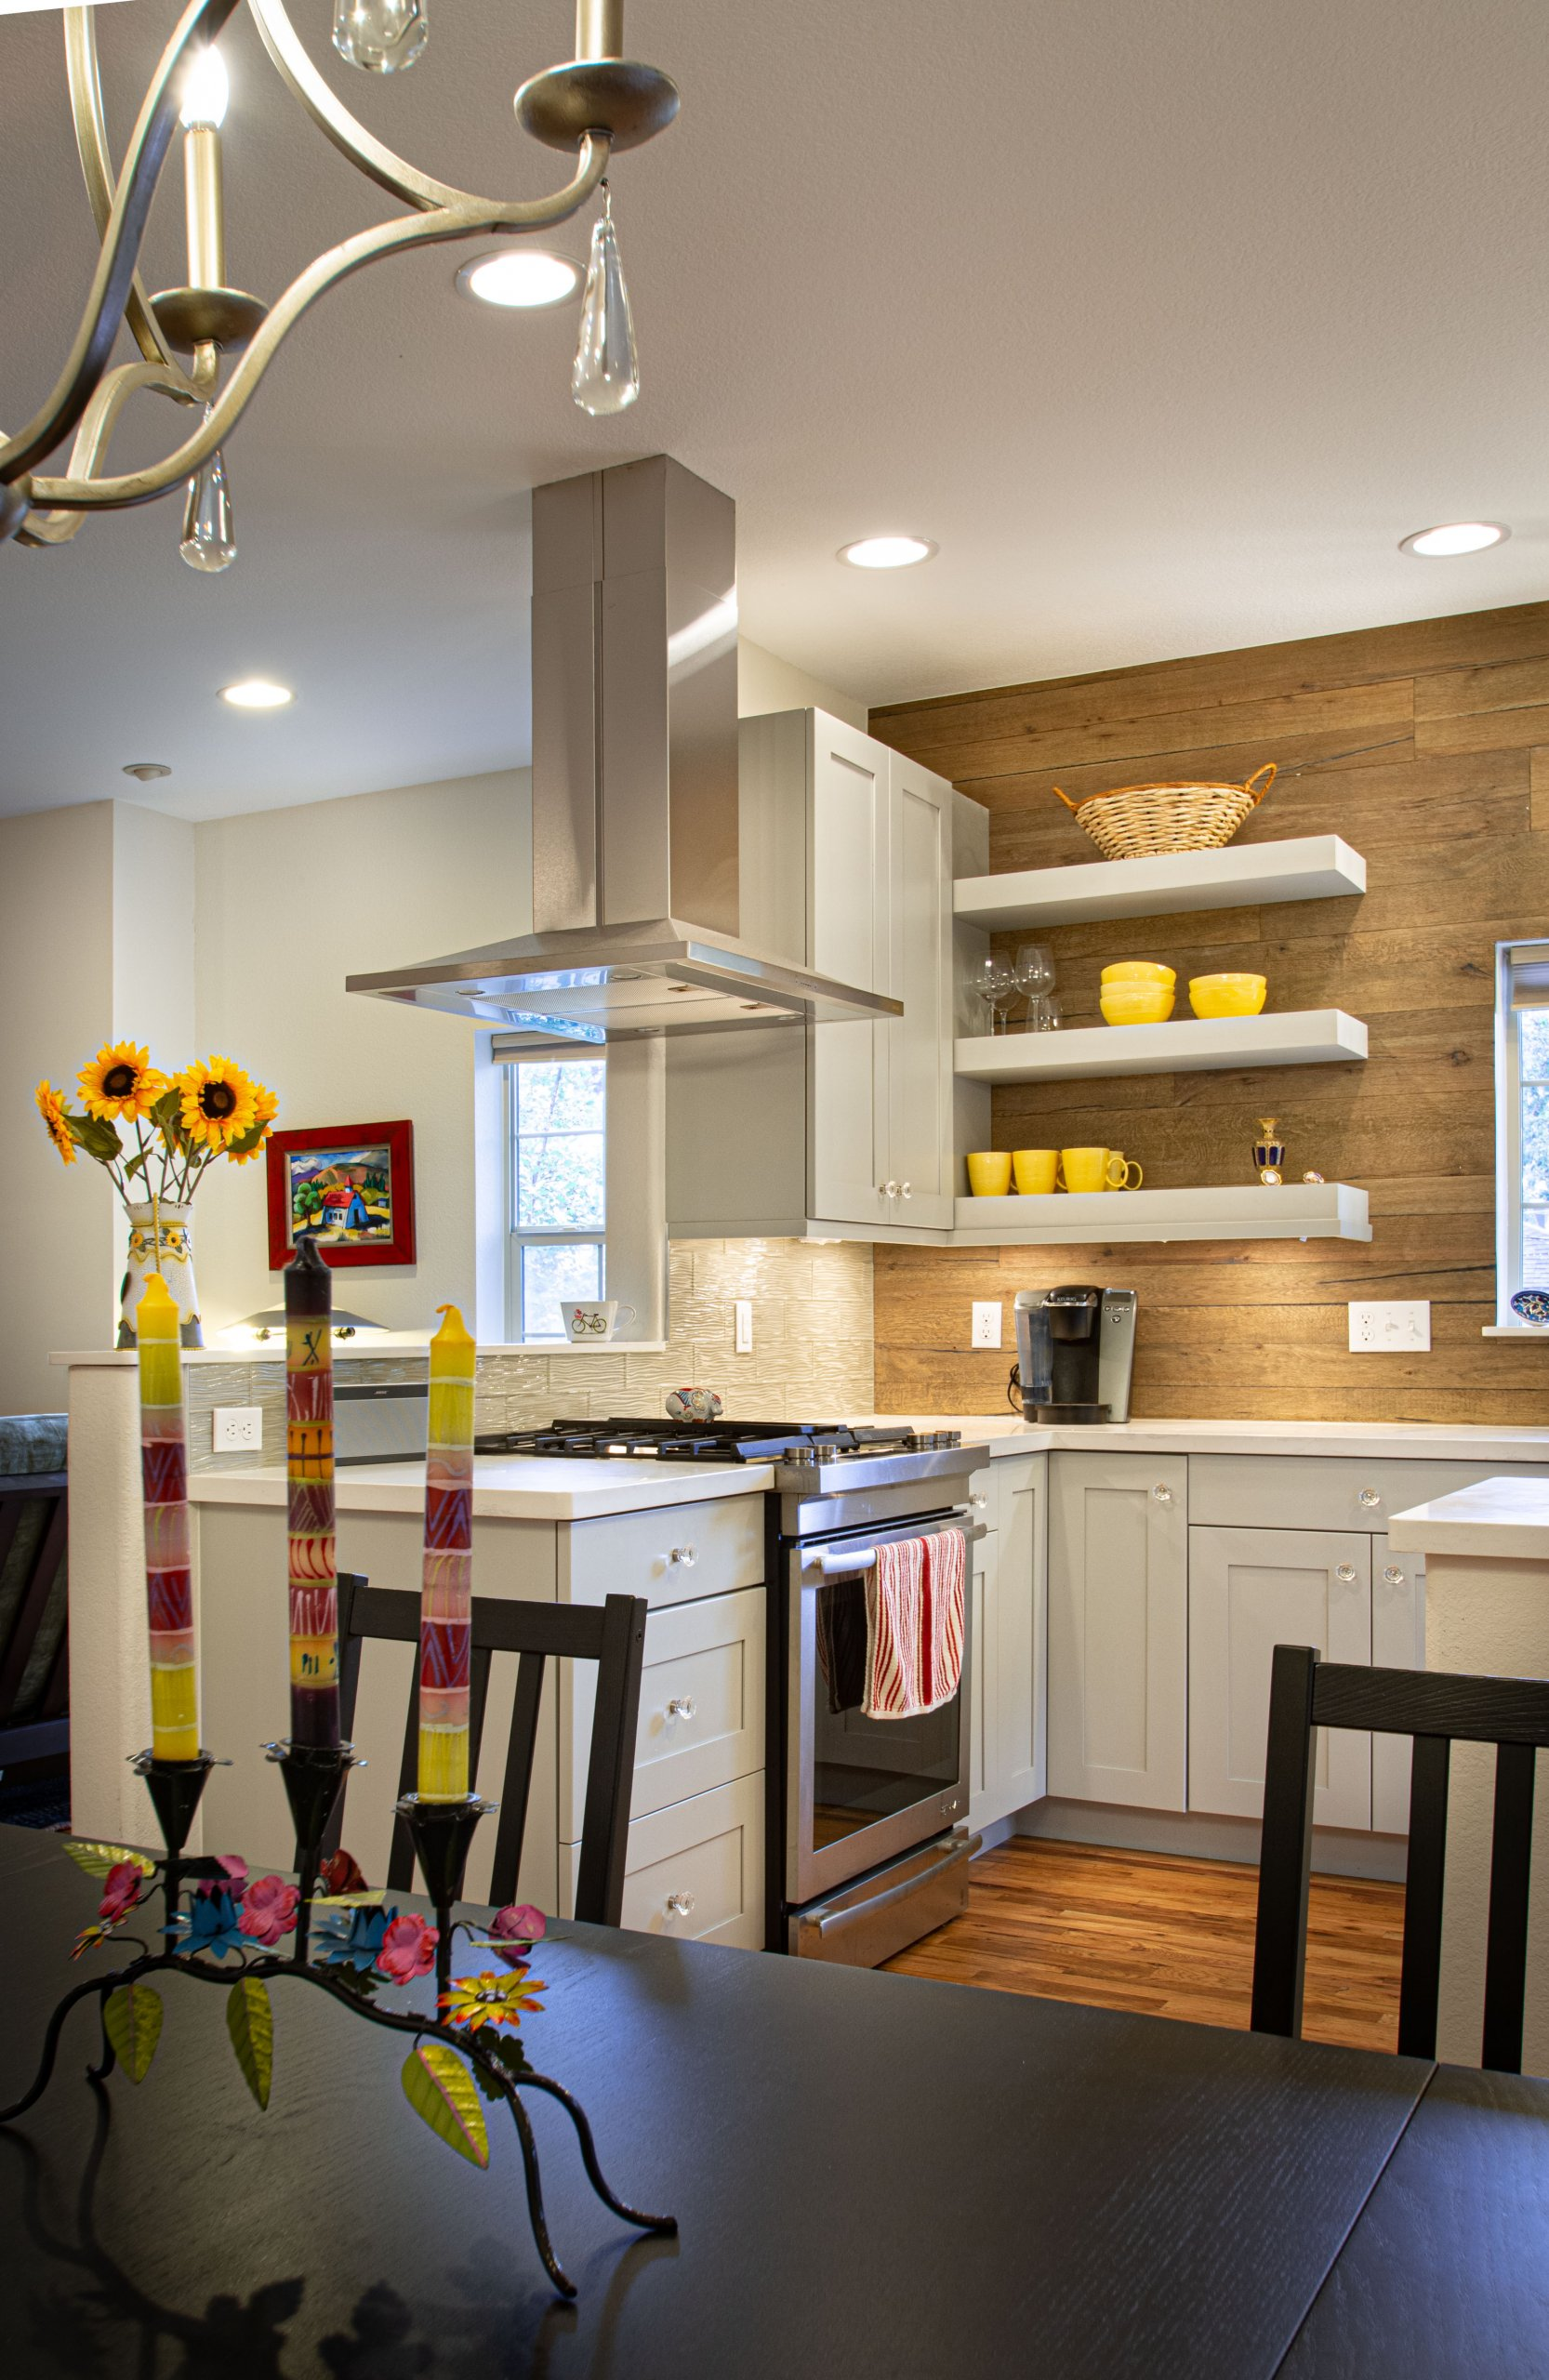 Contemporary French country kitchen remodel